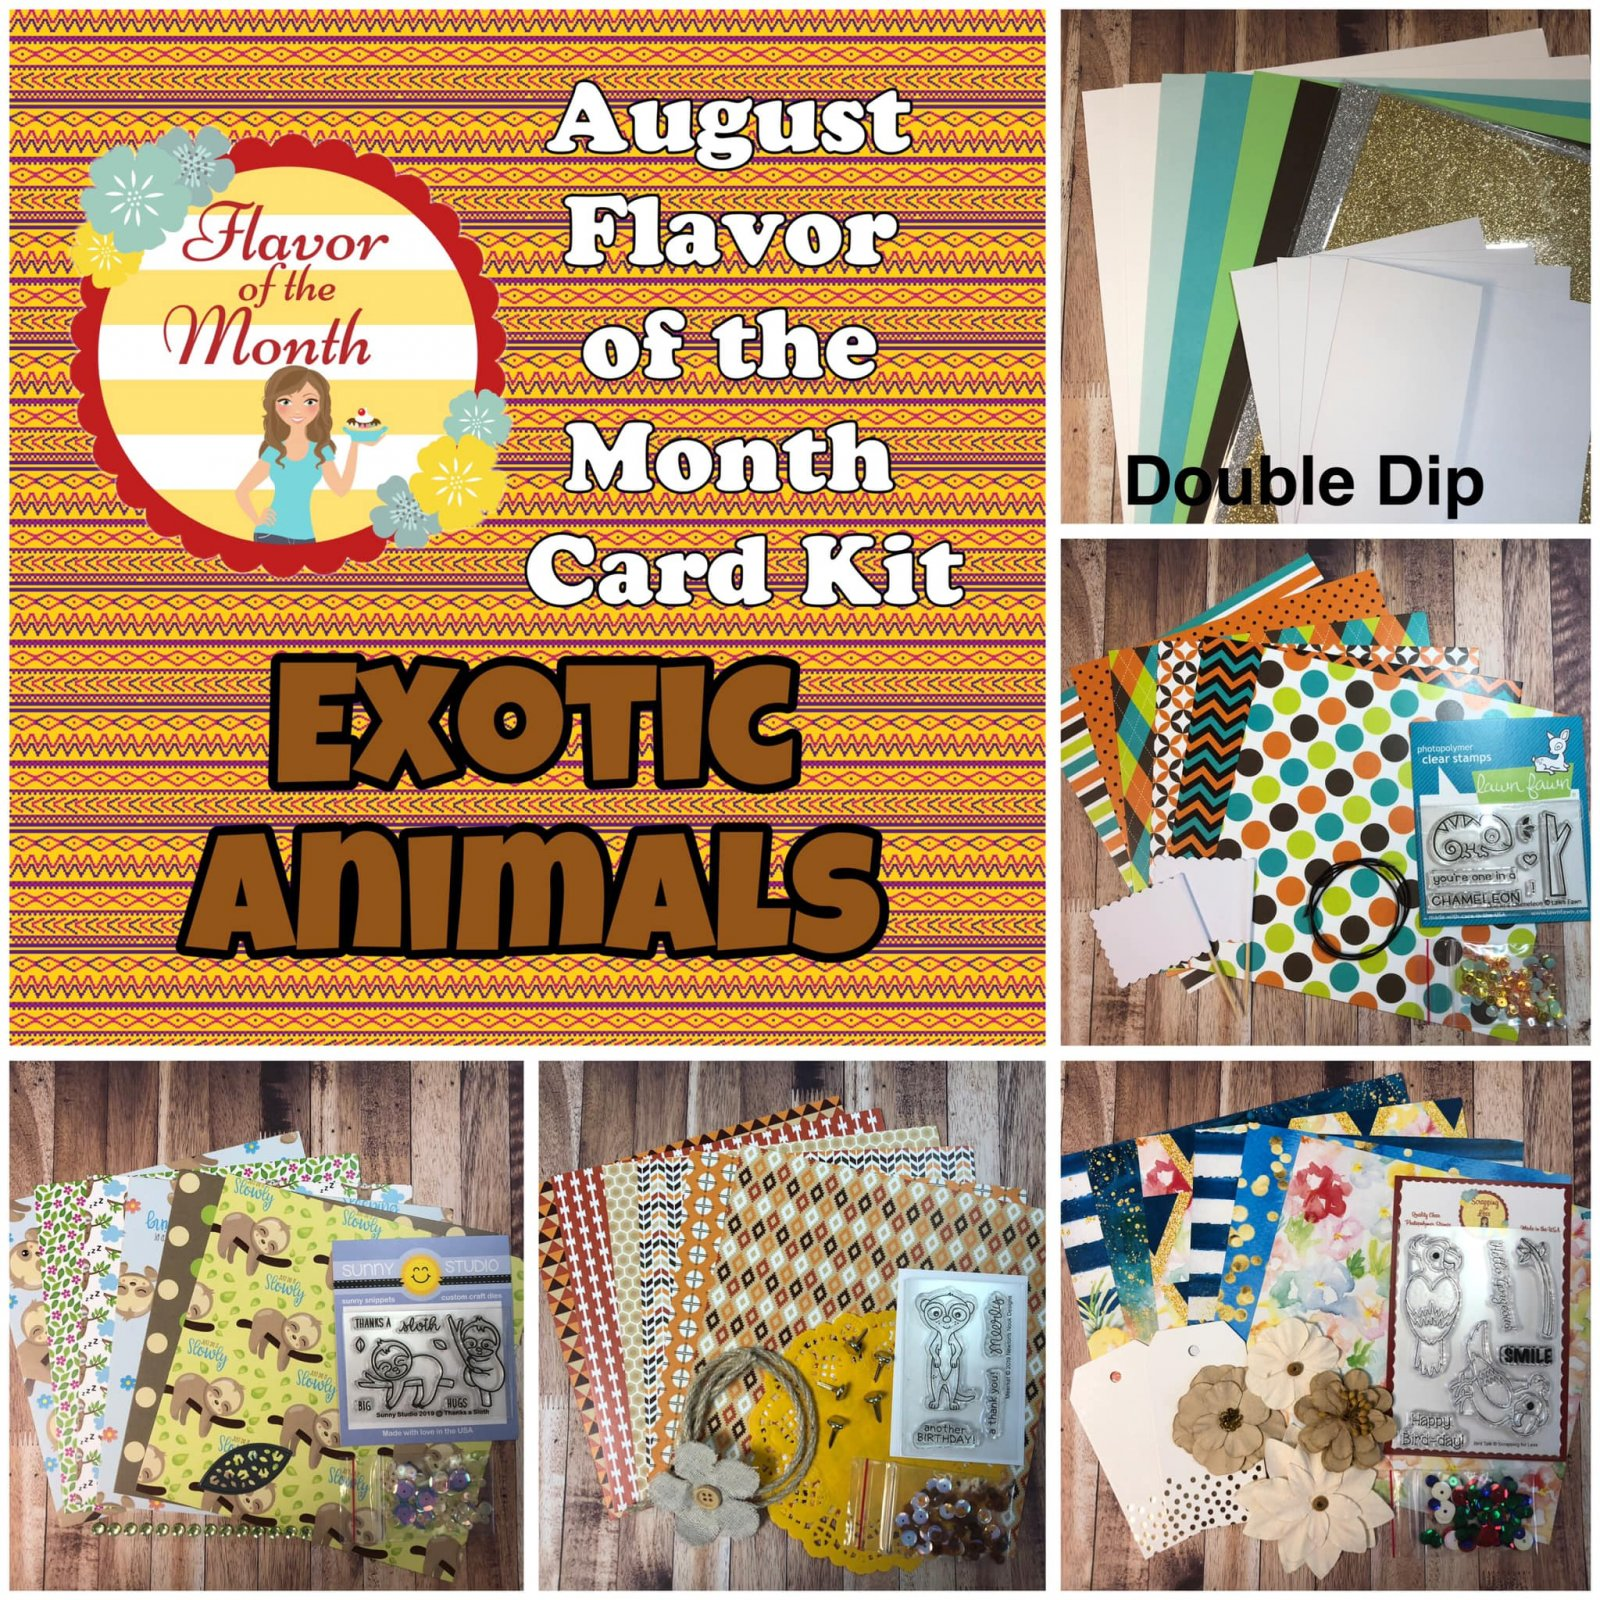 August 2019 Double Dip Flavor of the Month Exotic Animals